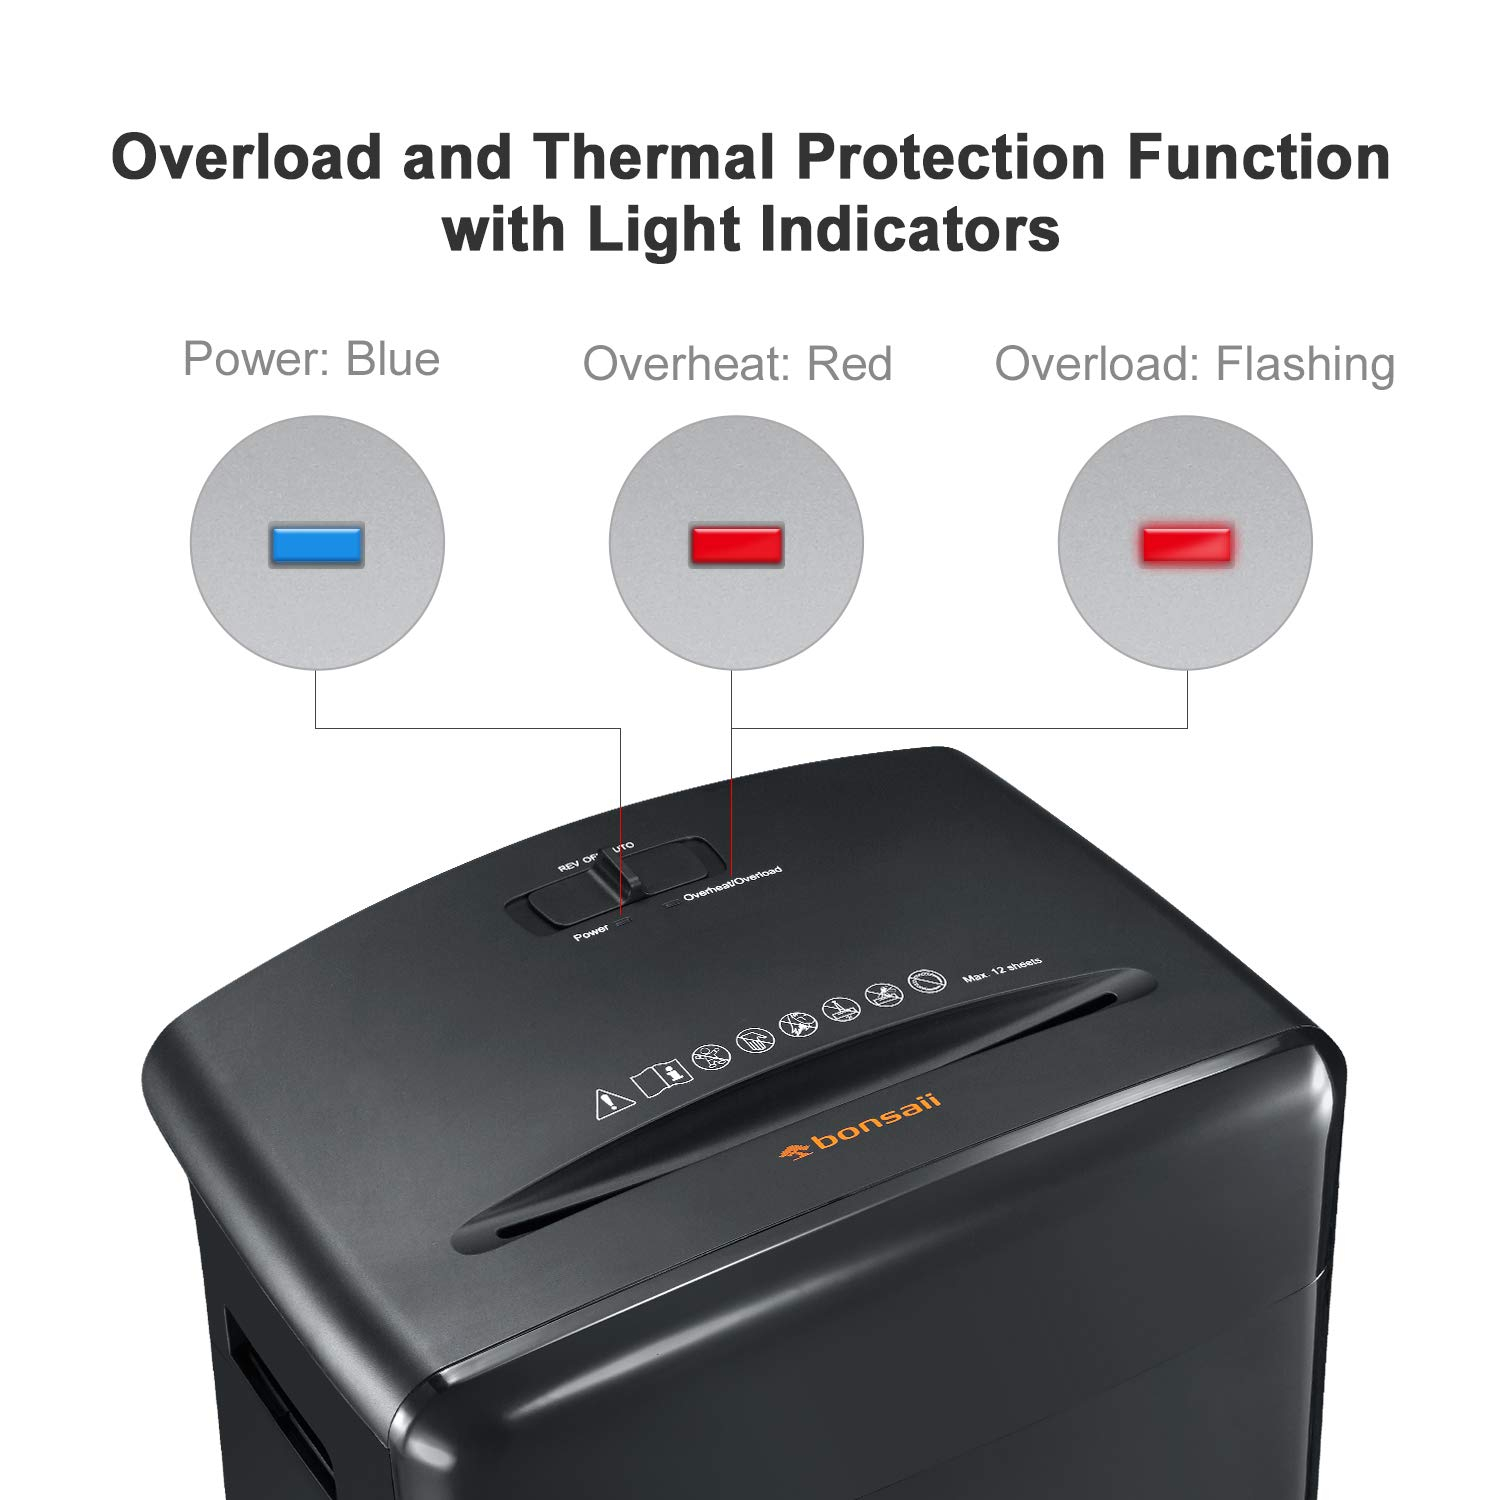 Bonsaii 12-Sheet Cross-Cut Paper, CD/DVD, and Credit Card Shredder with 3.5-gallons Pullout Basket, Black (C220-A) by bonsaii (Image #3)